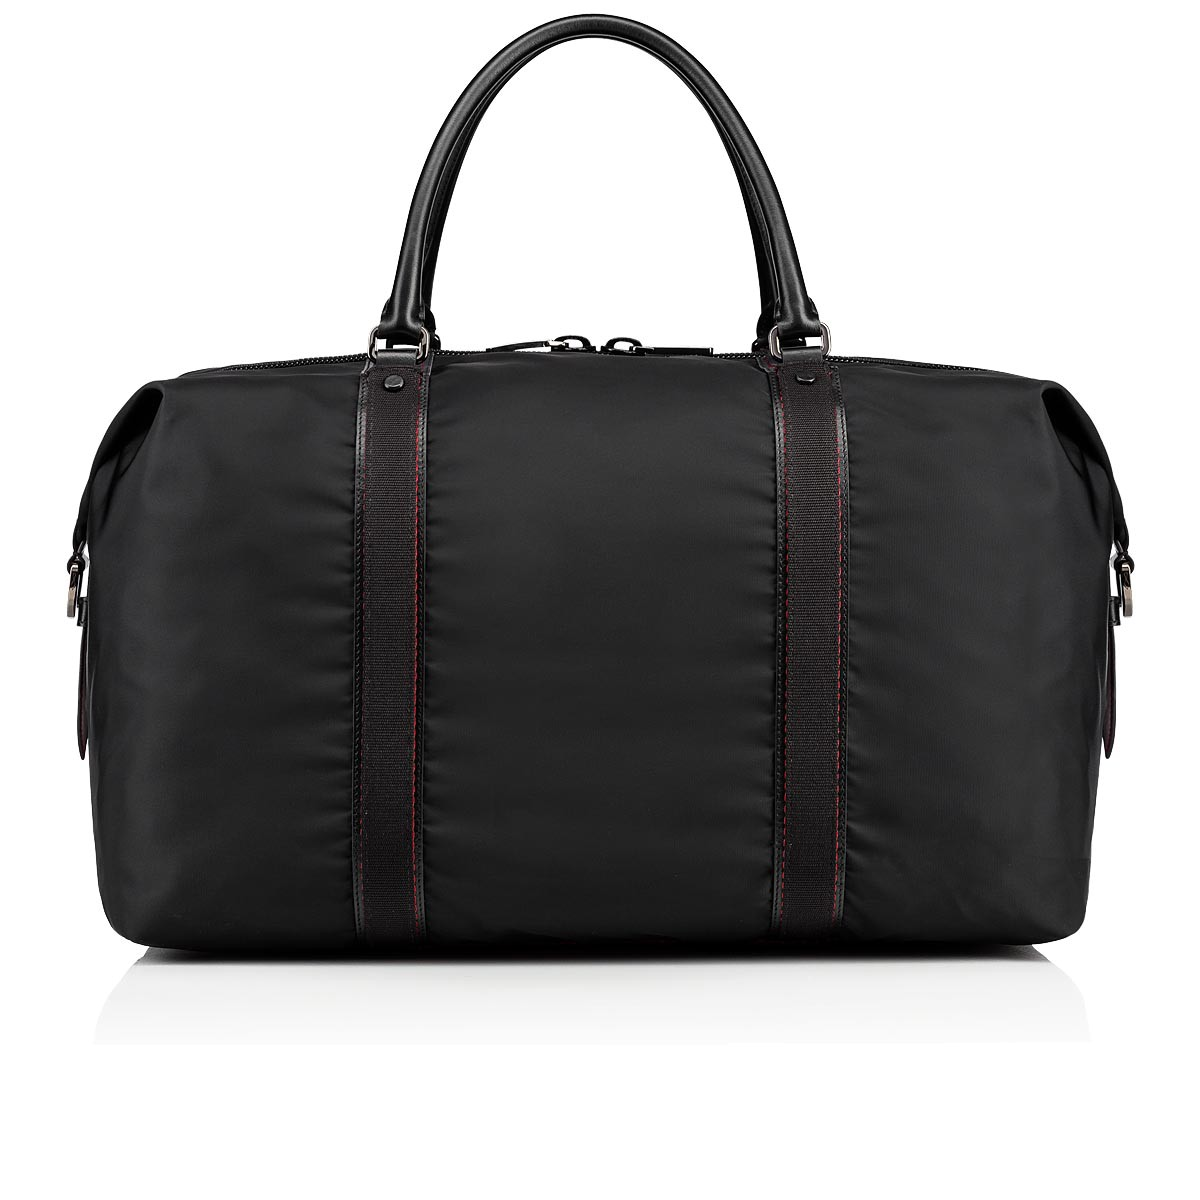 Men Bag - Parislisboa - Christian Louboutin